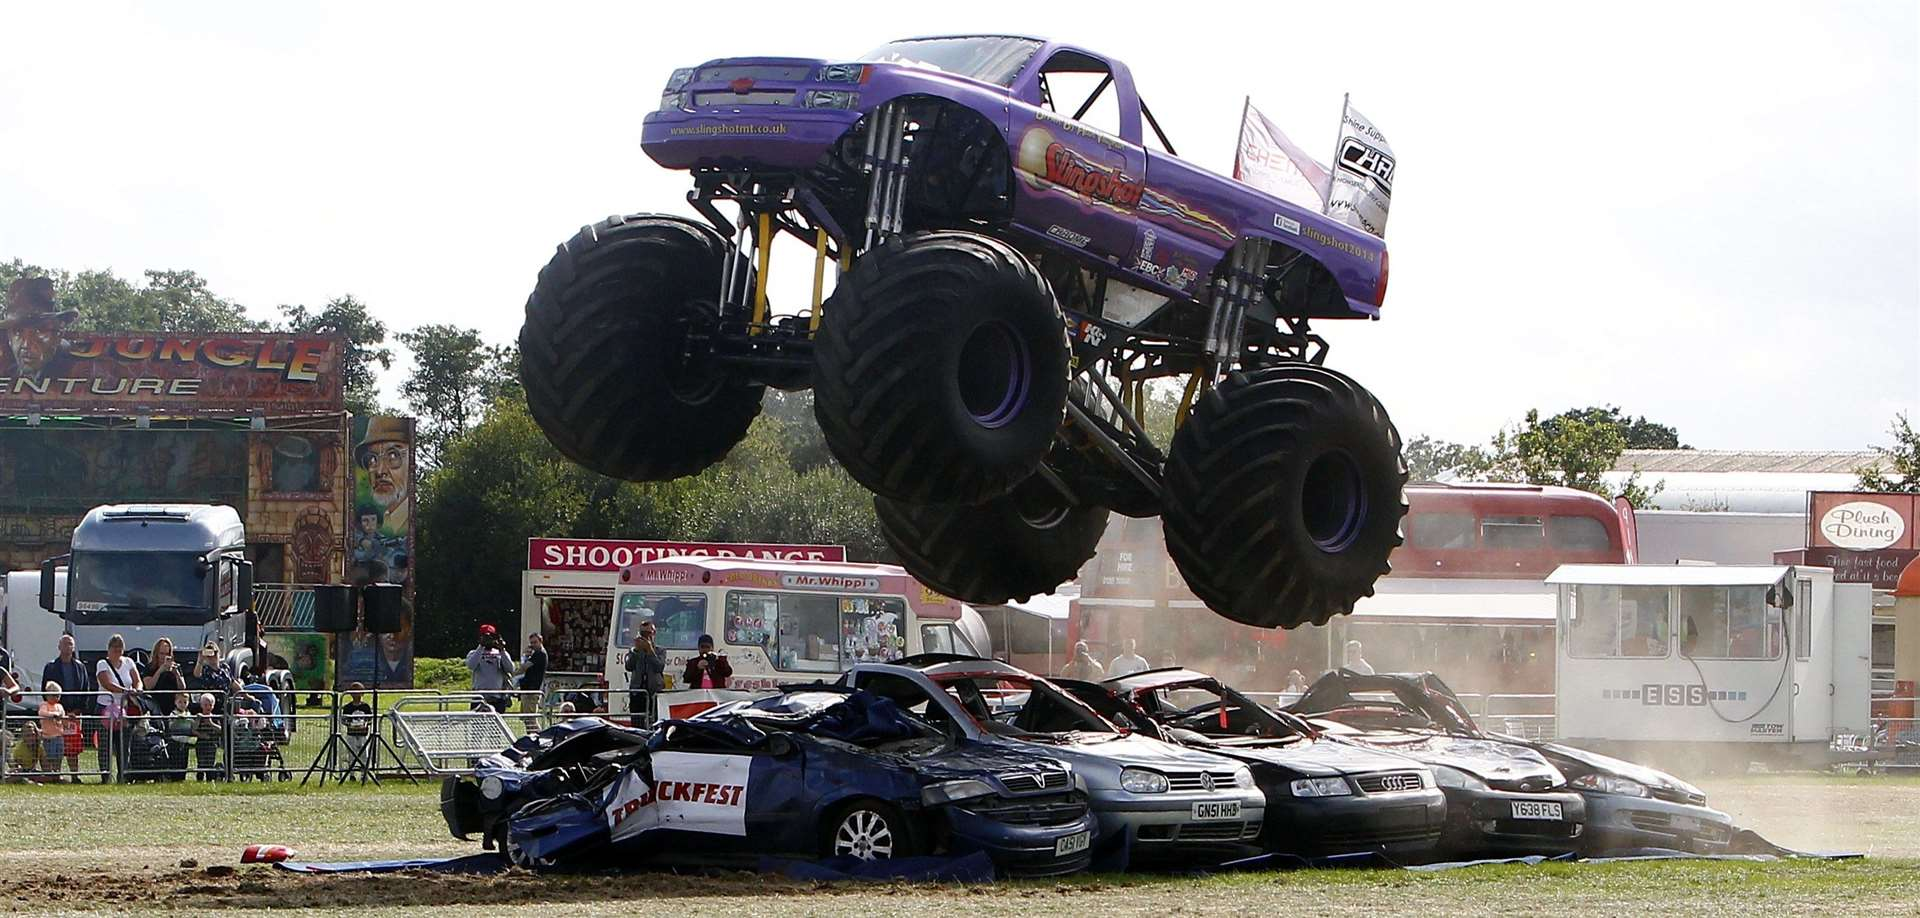 The Slingshot monster truck came to Truckfest last year Picture: Sean Aidan